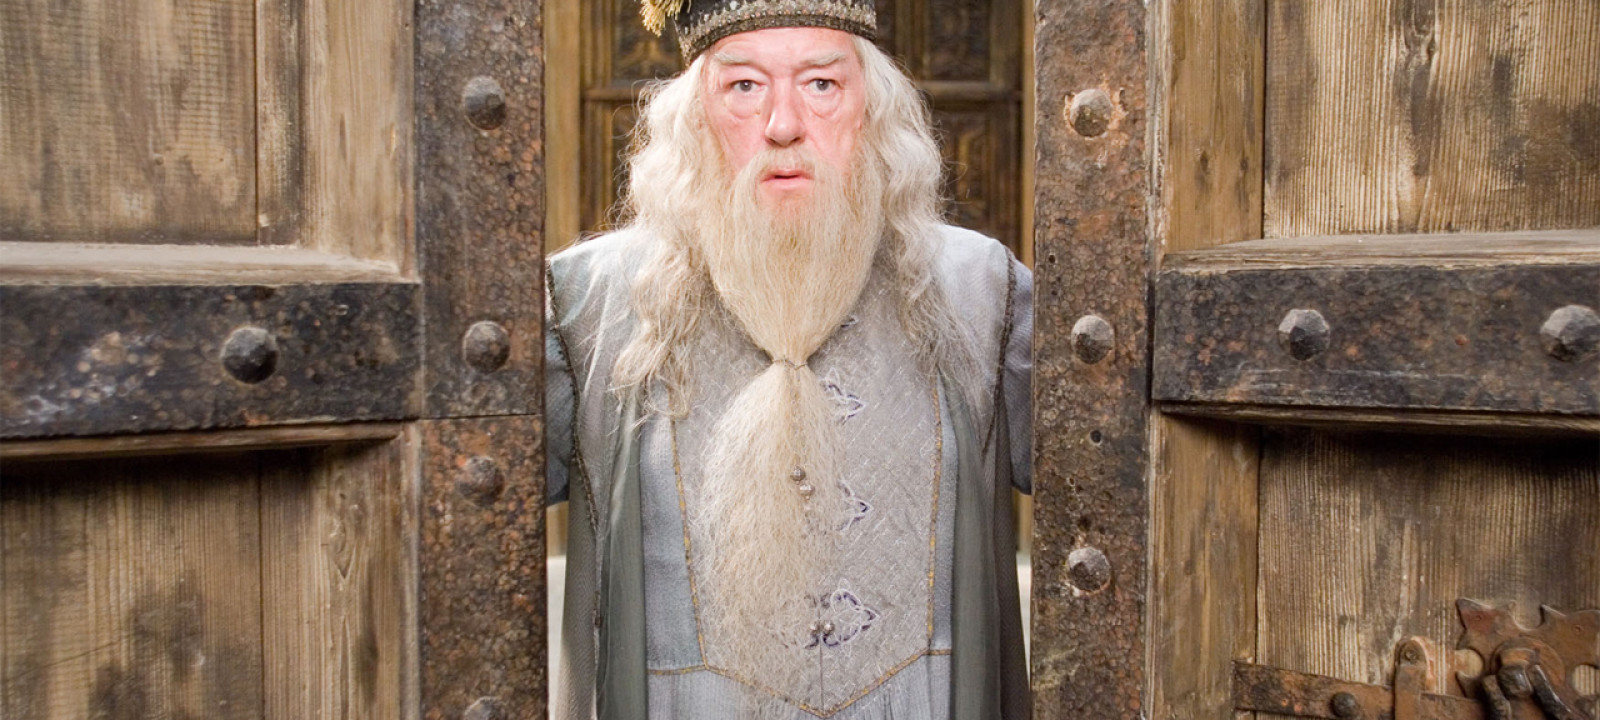 Professor Dumbledore will see you now. (Pic: Warner Bros.)